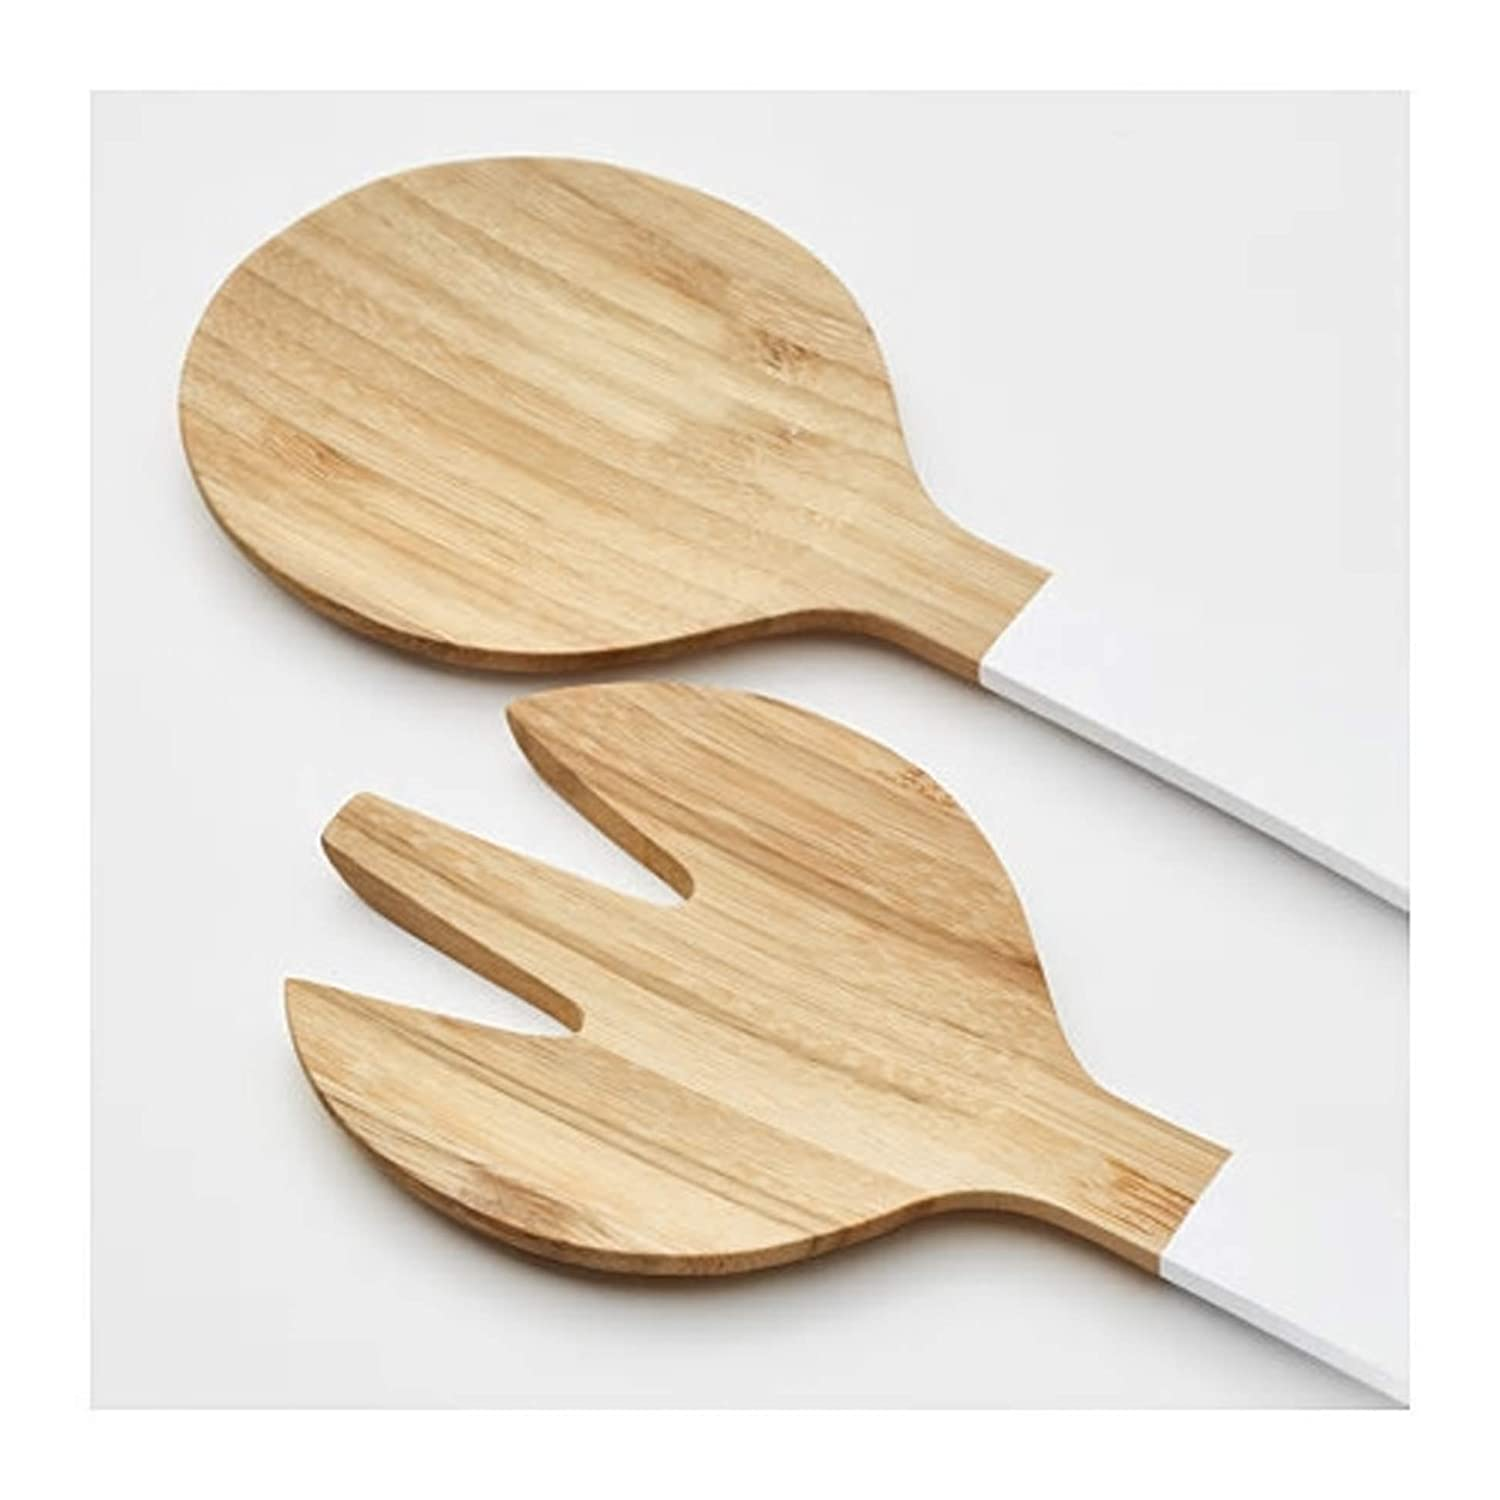 Paint Materials: Bamboo Oil Easy-Care and Hardwearing Natural Material 2-Piece Salad Servers Set Bamboo//White 31 cm